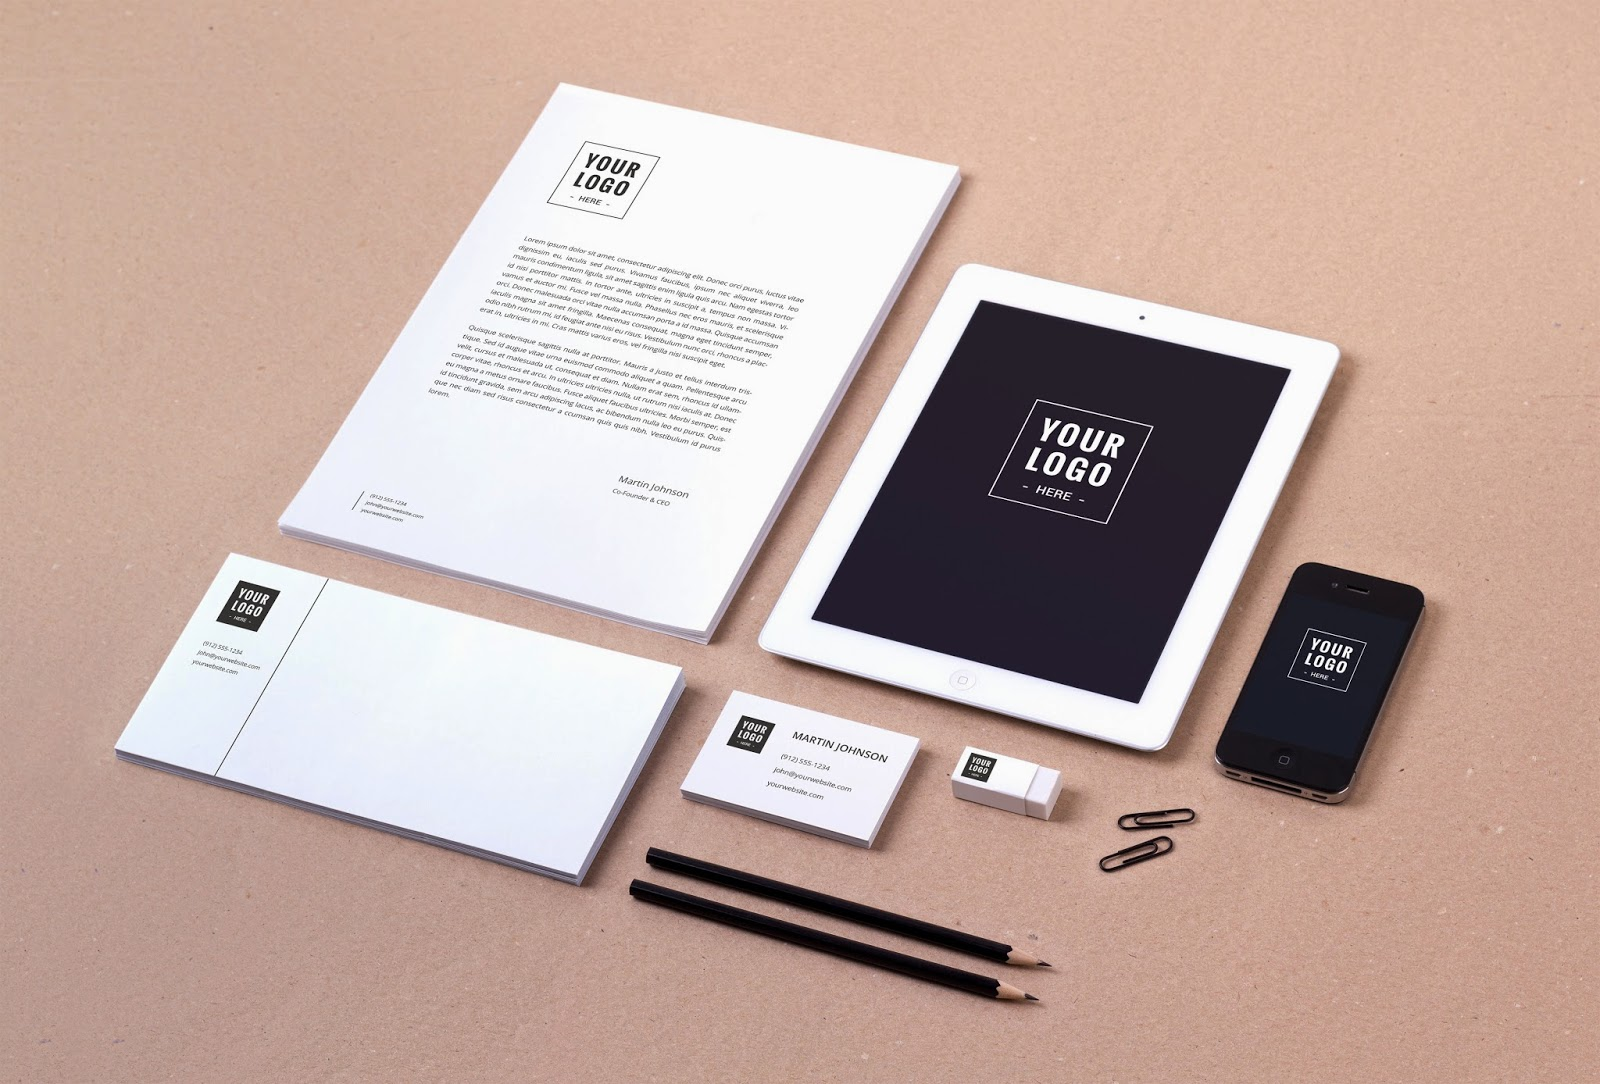 95 free stationery branding mockup psd for identity designs